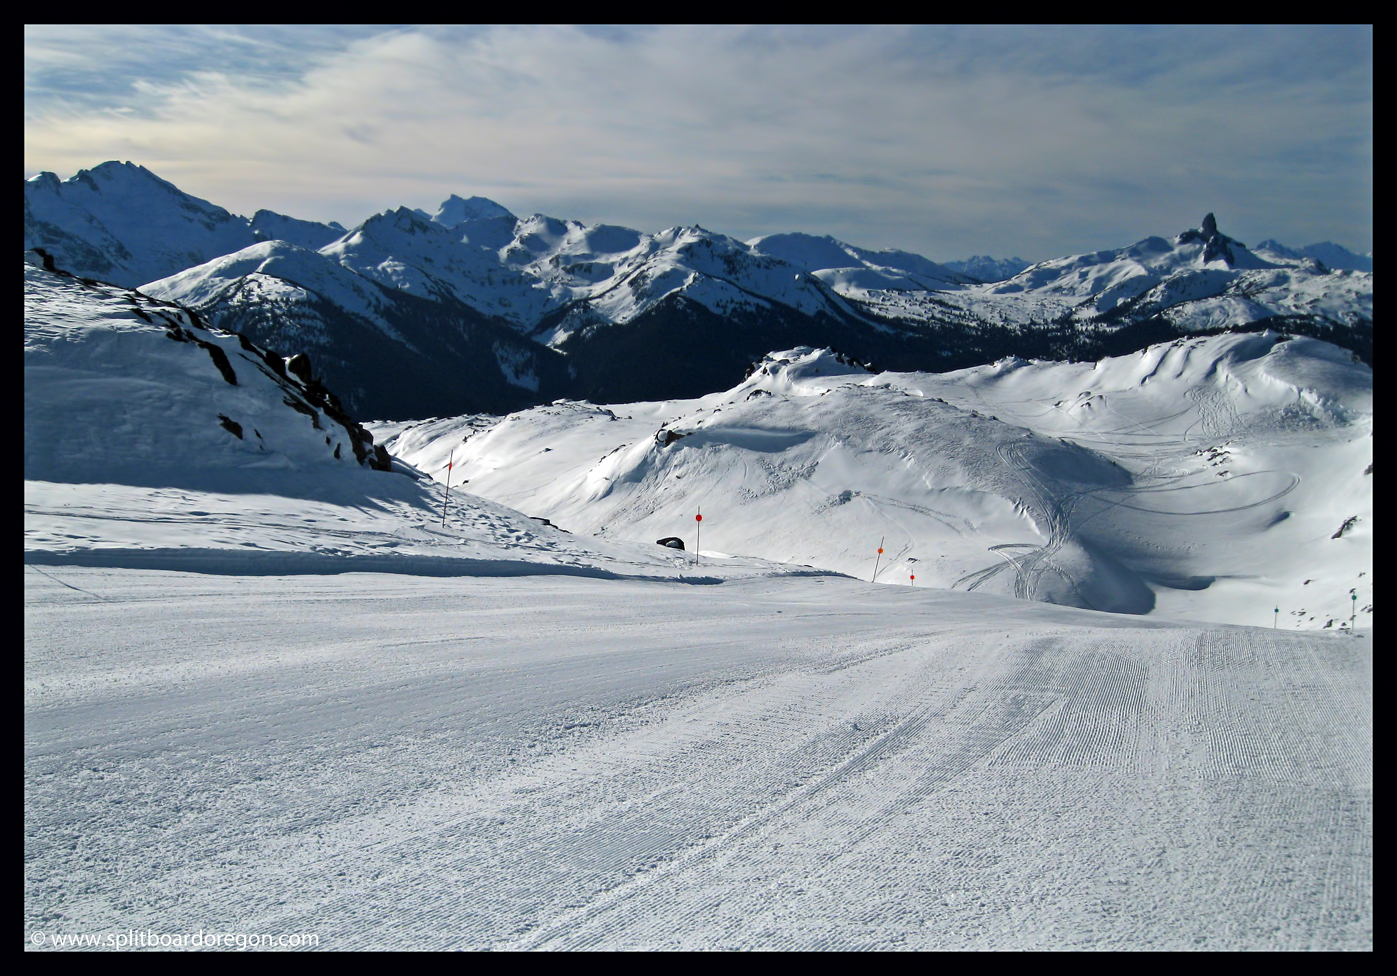 Looking out into the Whistler backcountry